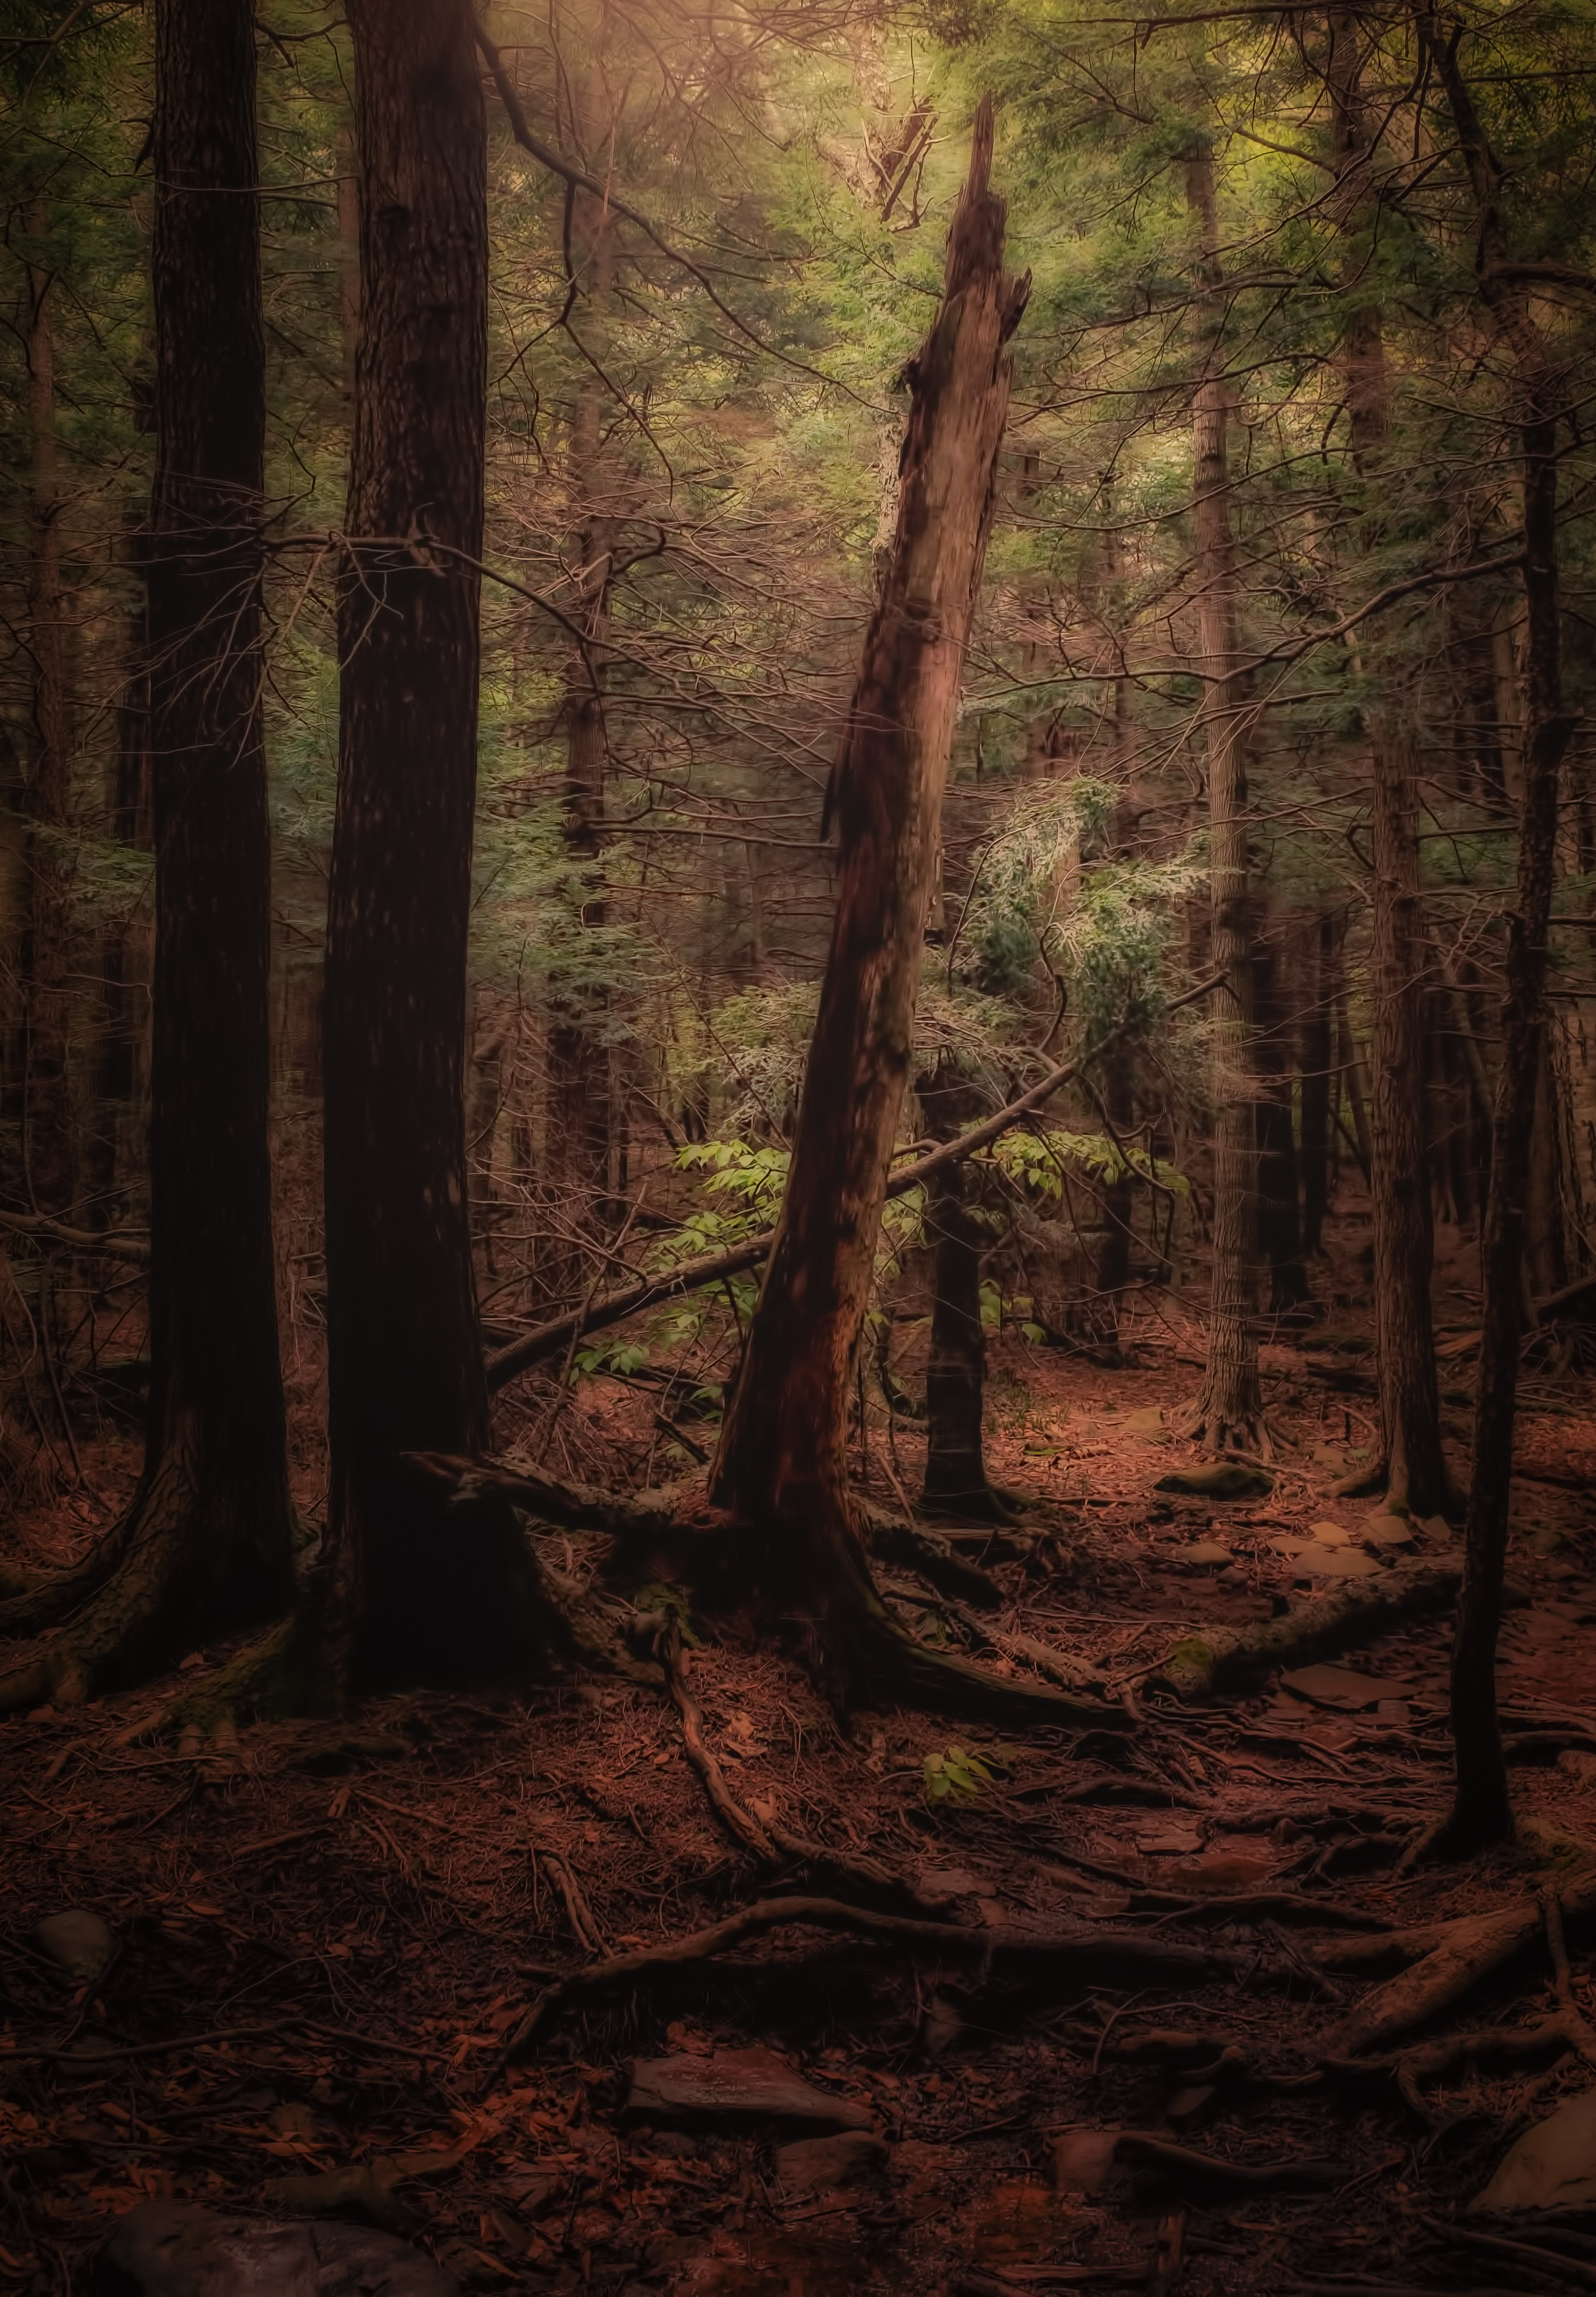 The Deep Woods - Fuji X100T, 1/60 @ f/5.6, ISO 640, 23mm - I used the Duplex preset in Nix Color Effects, one of my favorites, to produce this forbidding image.